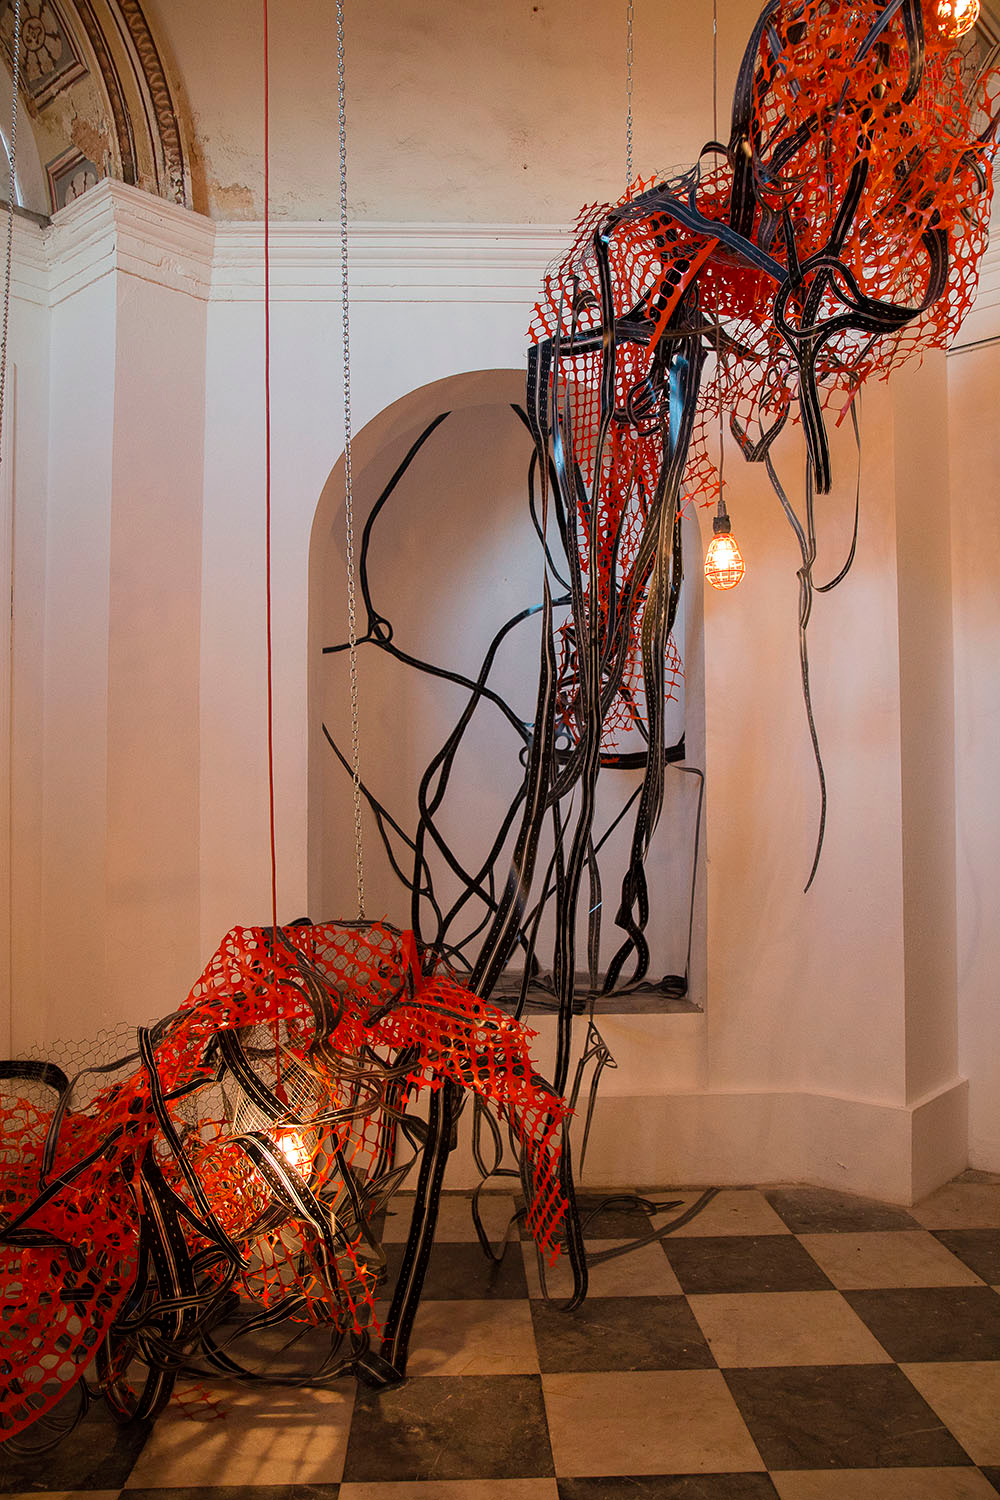 "Closed System III  (installation view) 2015; Woodcut on mylar, fencing, extension cords, tape chains, lights and zip ties; 30' x 22' x 22"" Shown here at  4ta: Trienal Poli/Gráfica de San Juan: América Latina y el Caribe , San Juan, Puerto Rico"